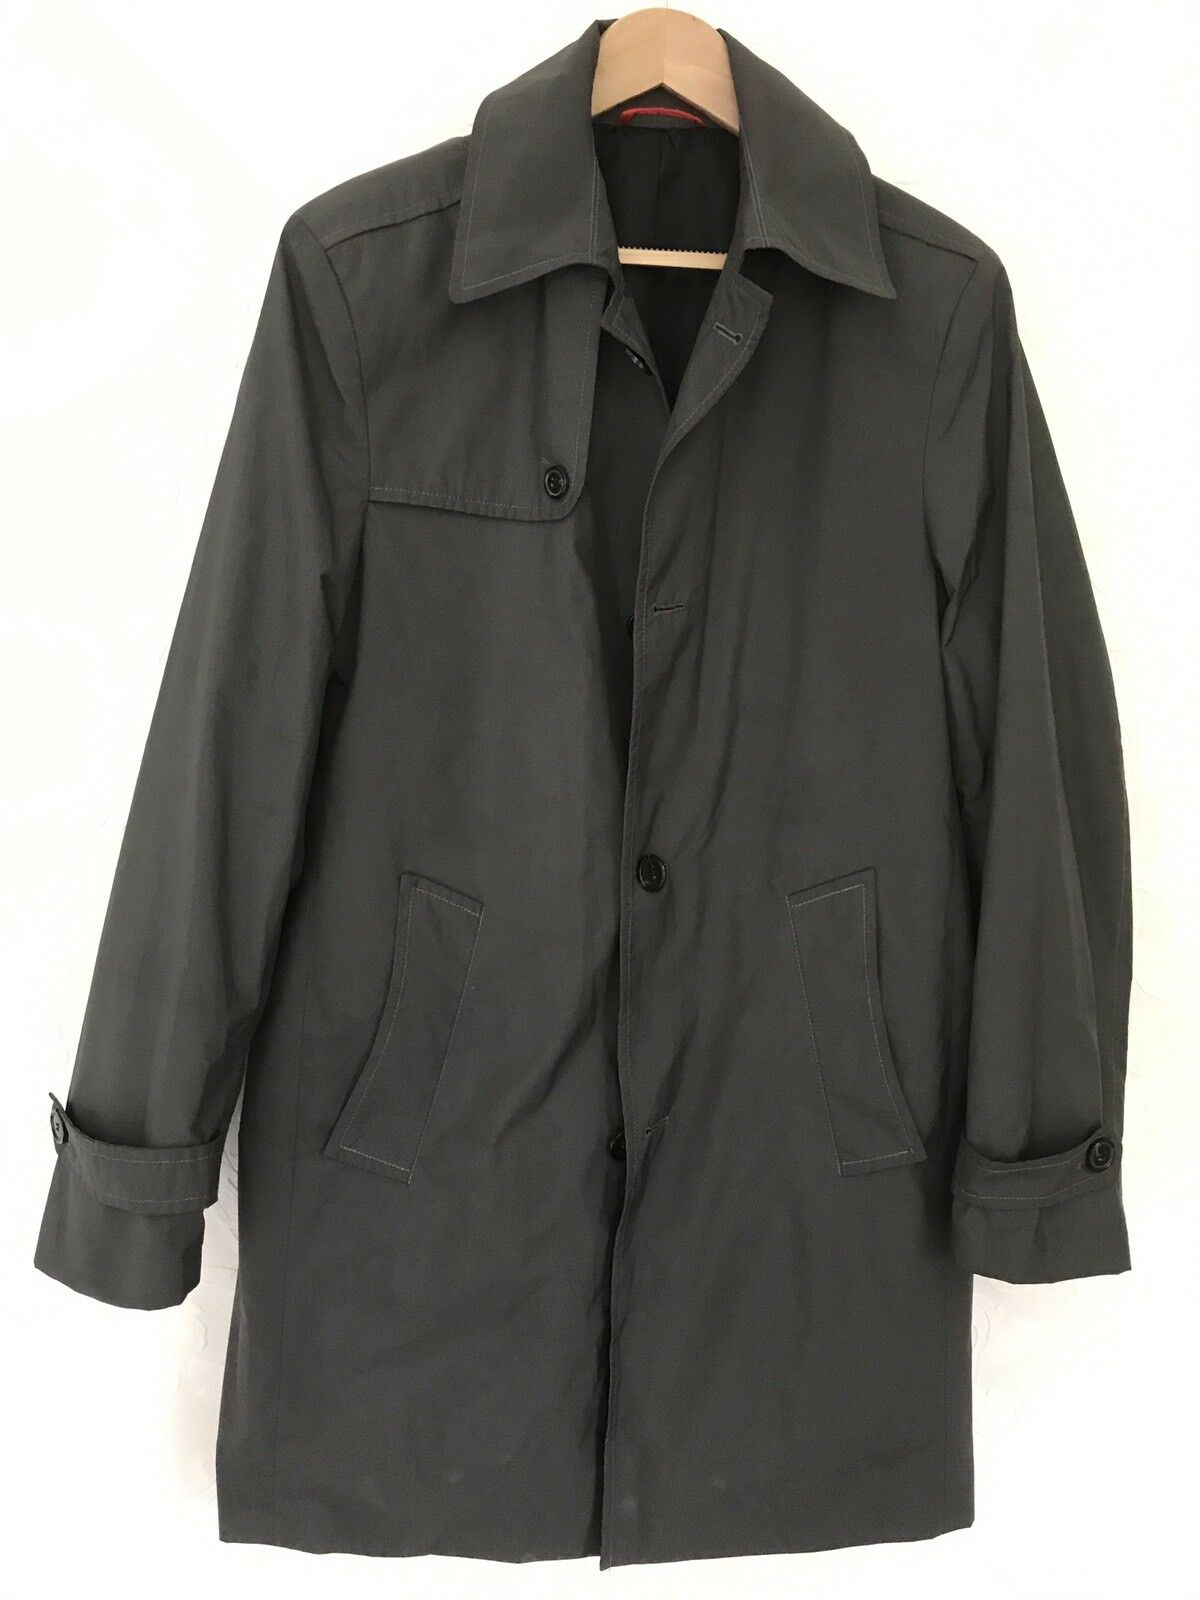 Duffel & Rums Light Spring Over Coats/ Grau/ Extra Large. (UK 42 Chest)